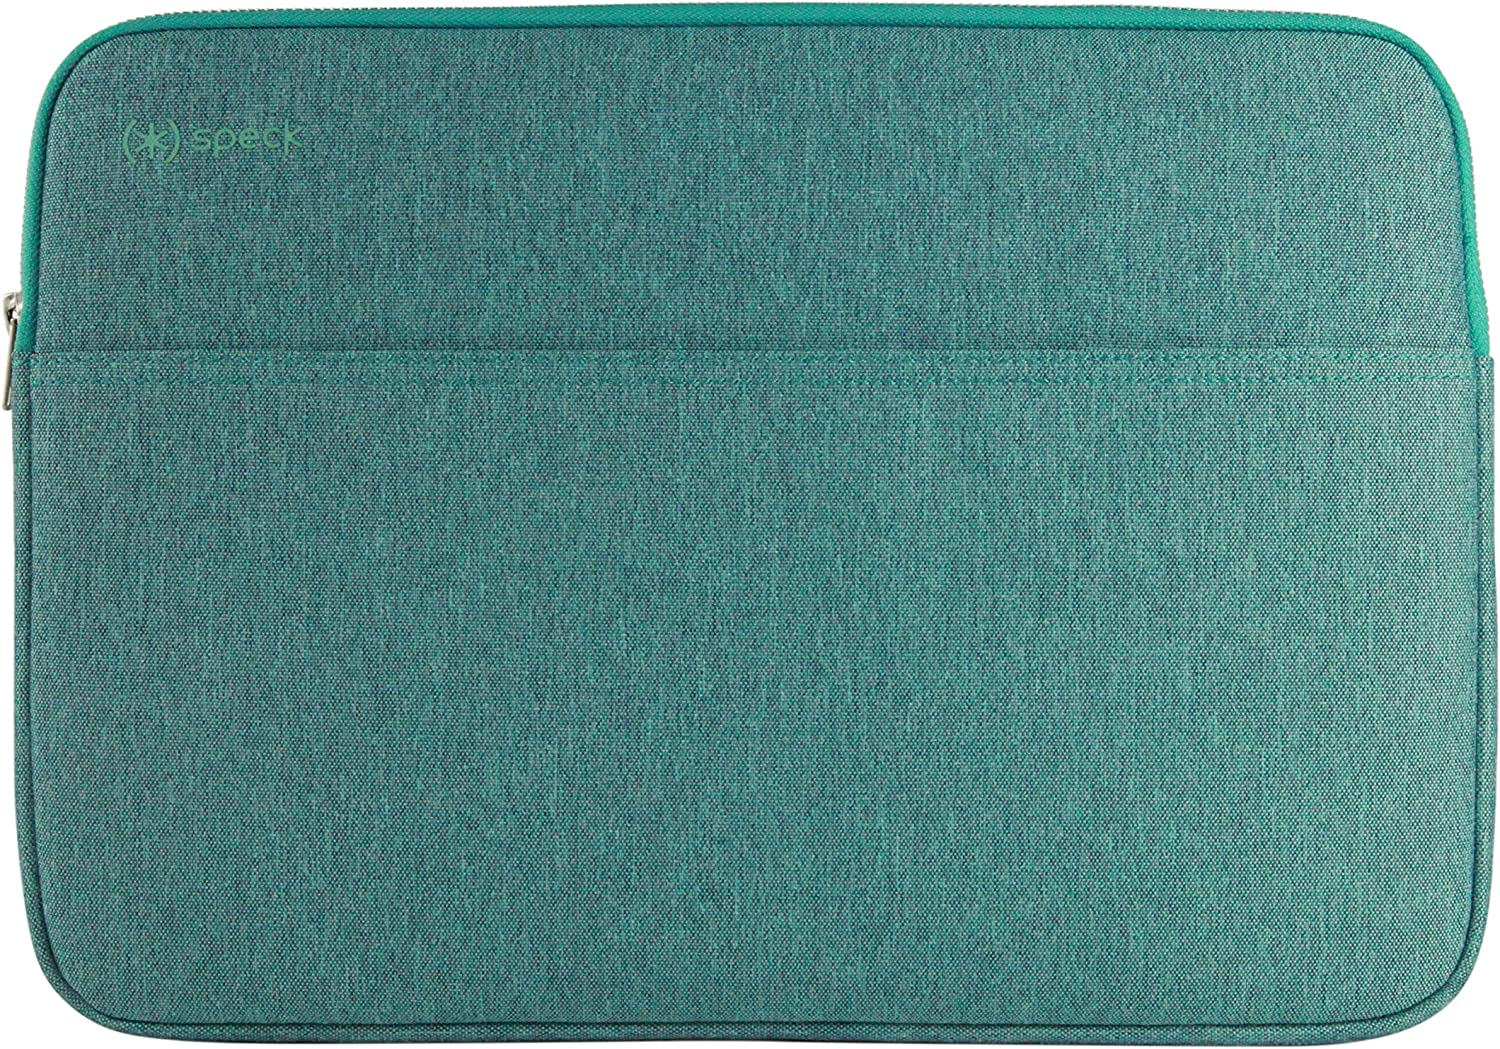 Speck Products Haversack Sleeve, Universal Sleeve for 13-14 Inch Laptops, Kingfisher Teal/Antilles Teal